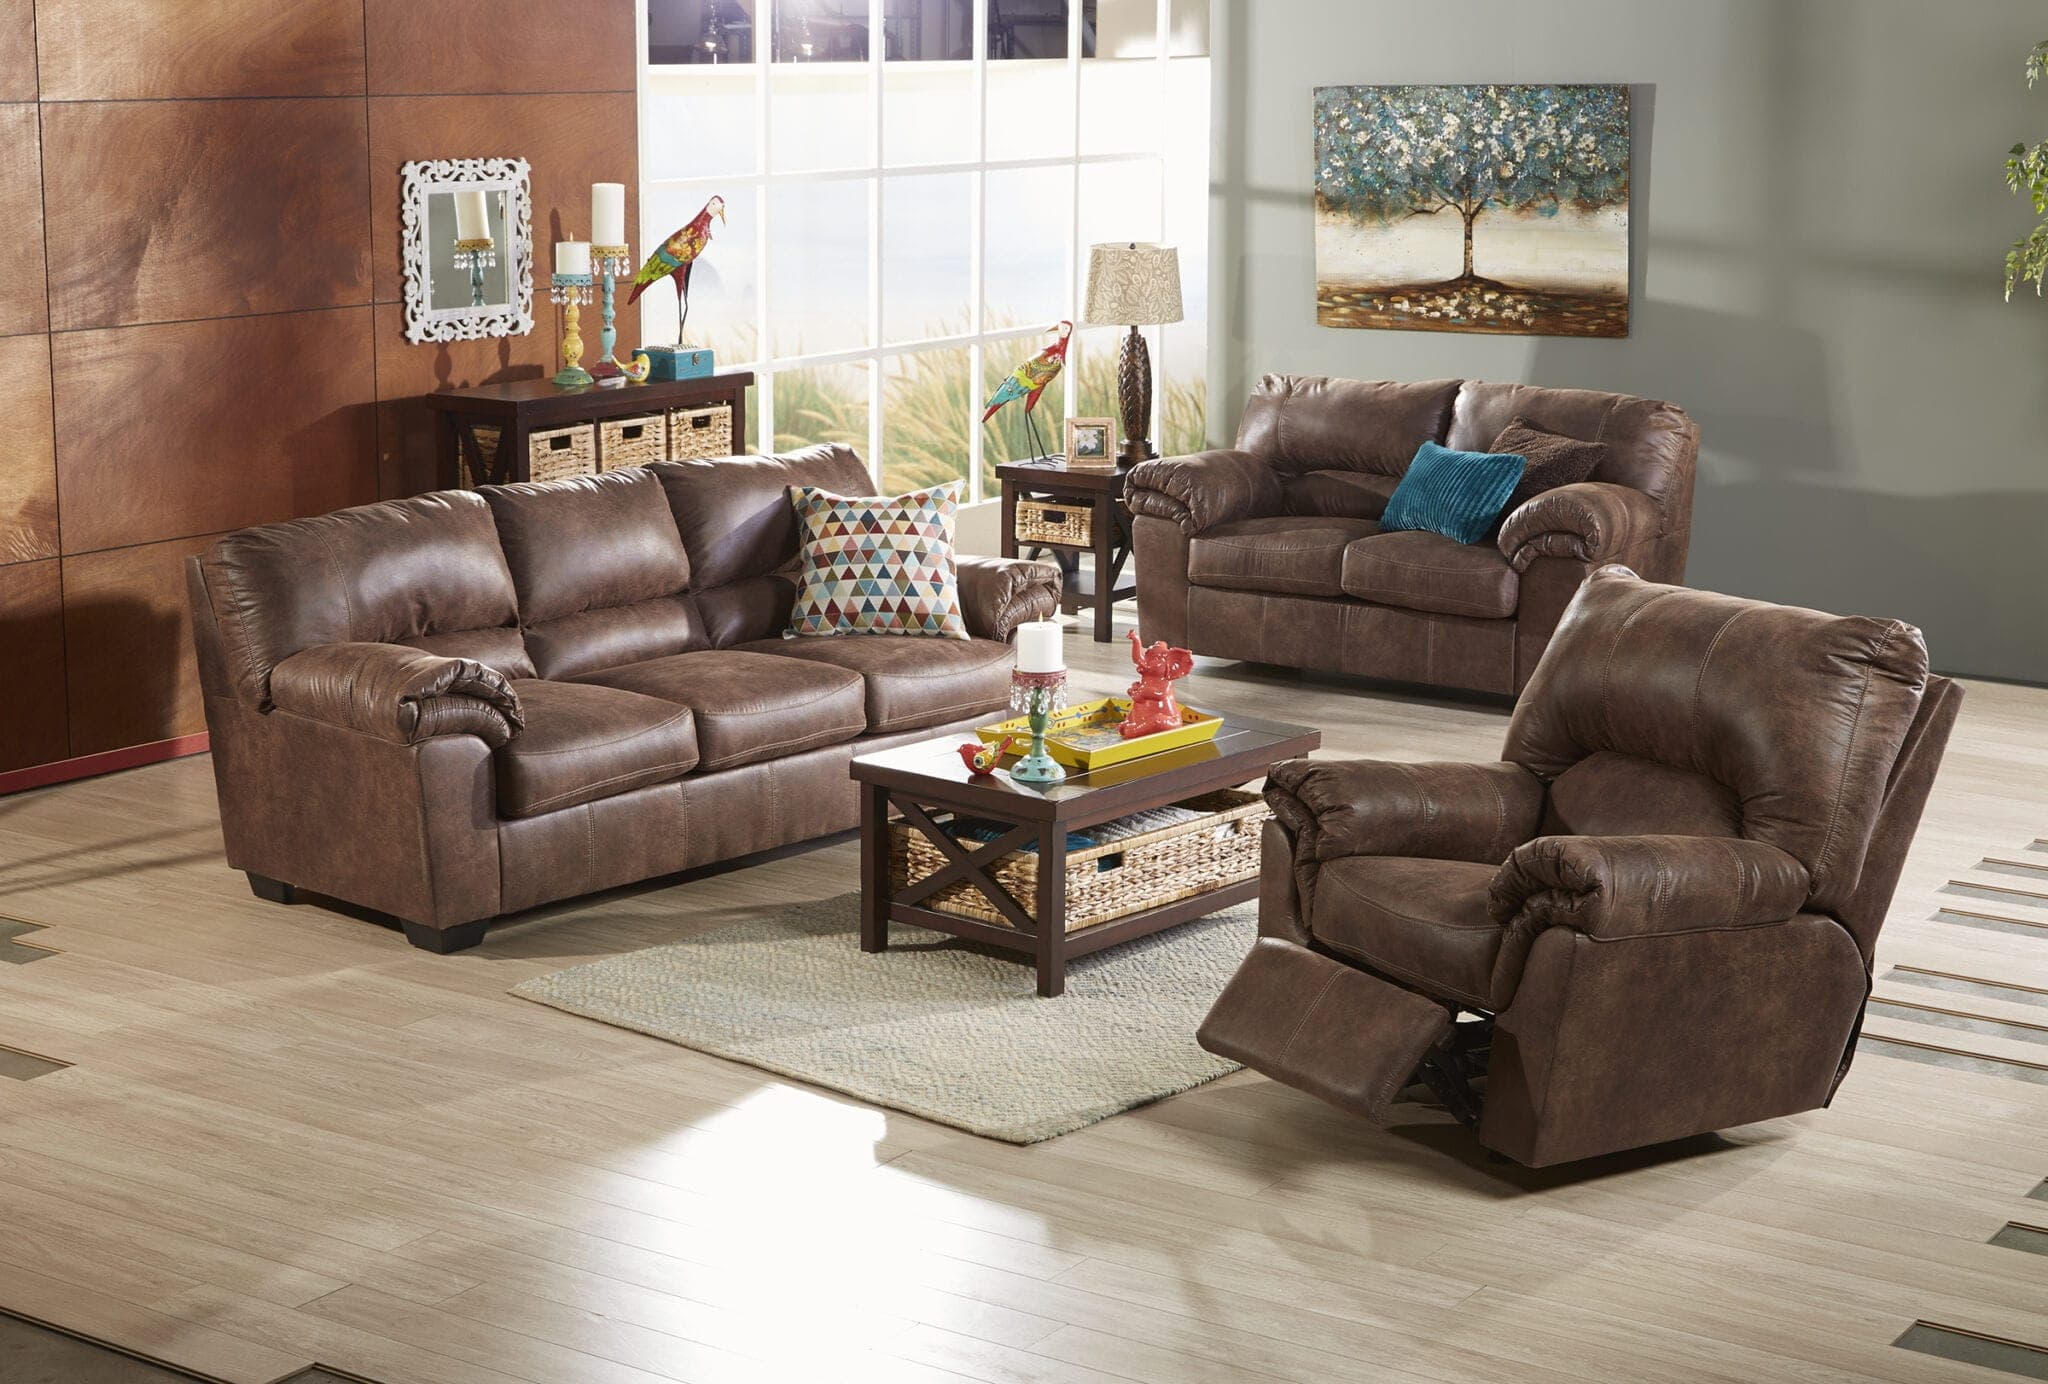 fred meyer truckload furniture event couches under 300 5 pc dining set more. Black Bedroom Furniture Sets. Home Design Ideas